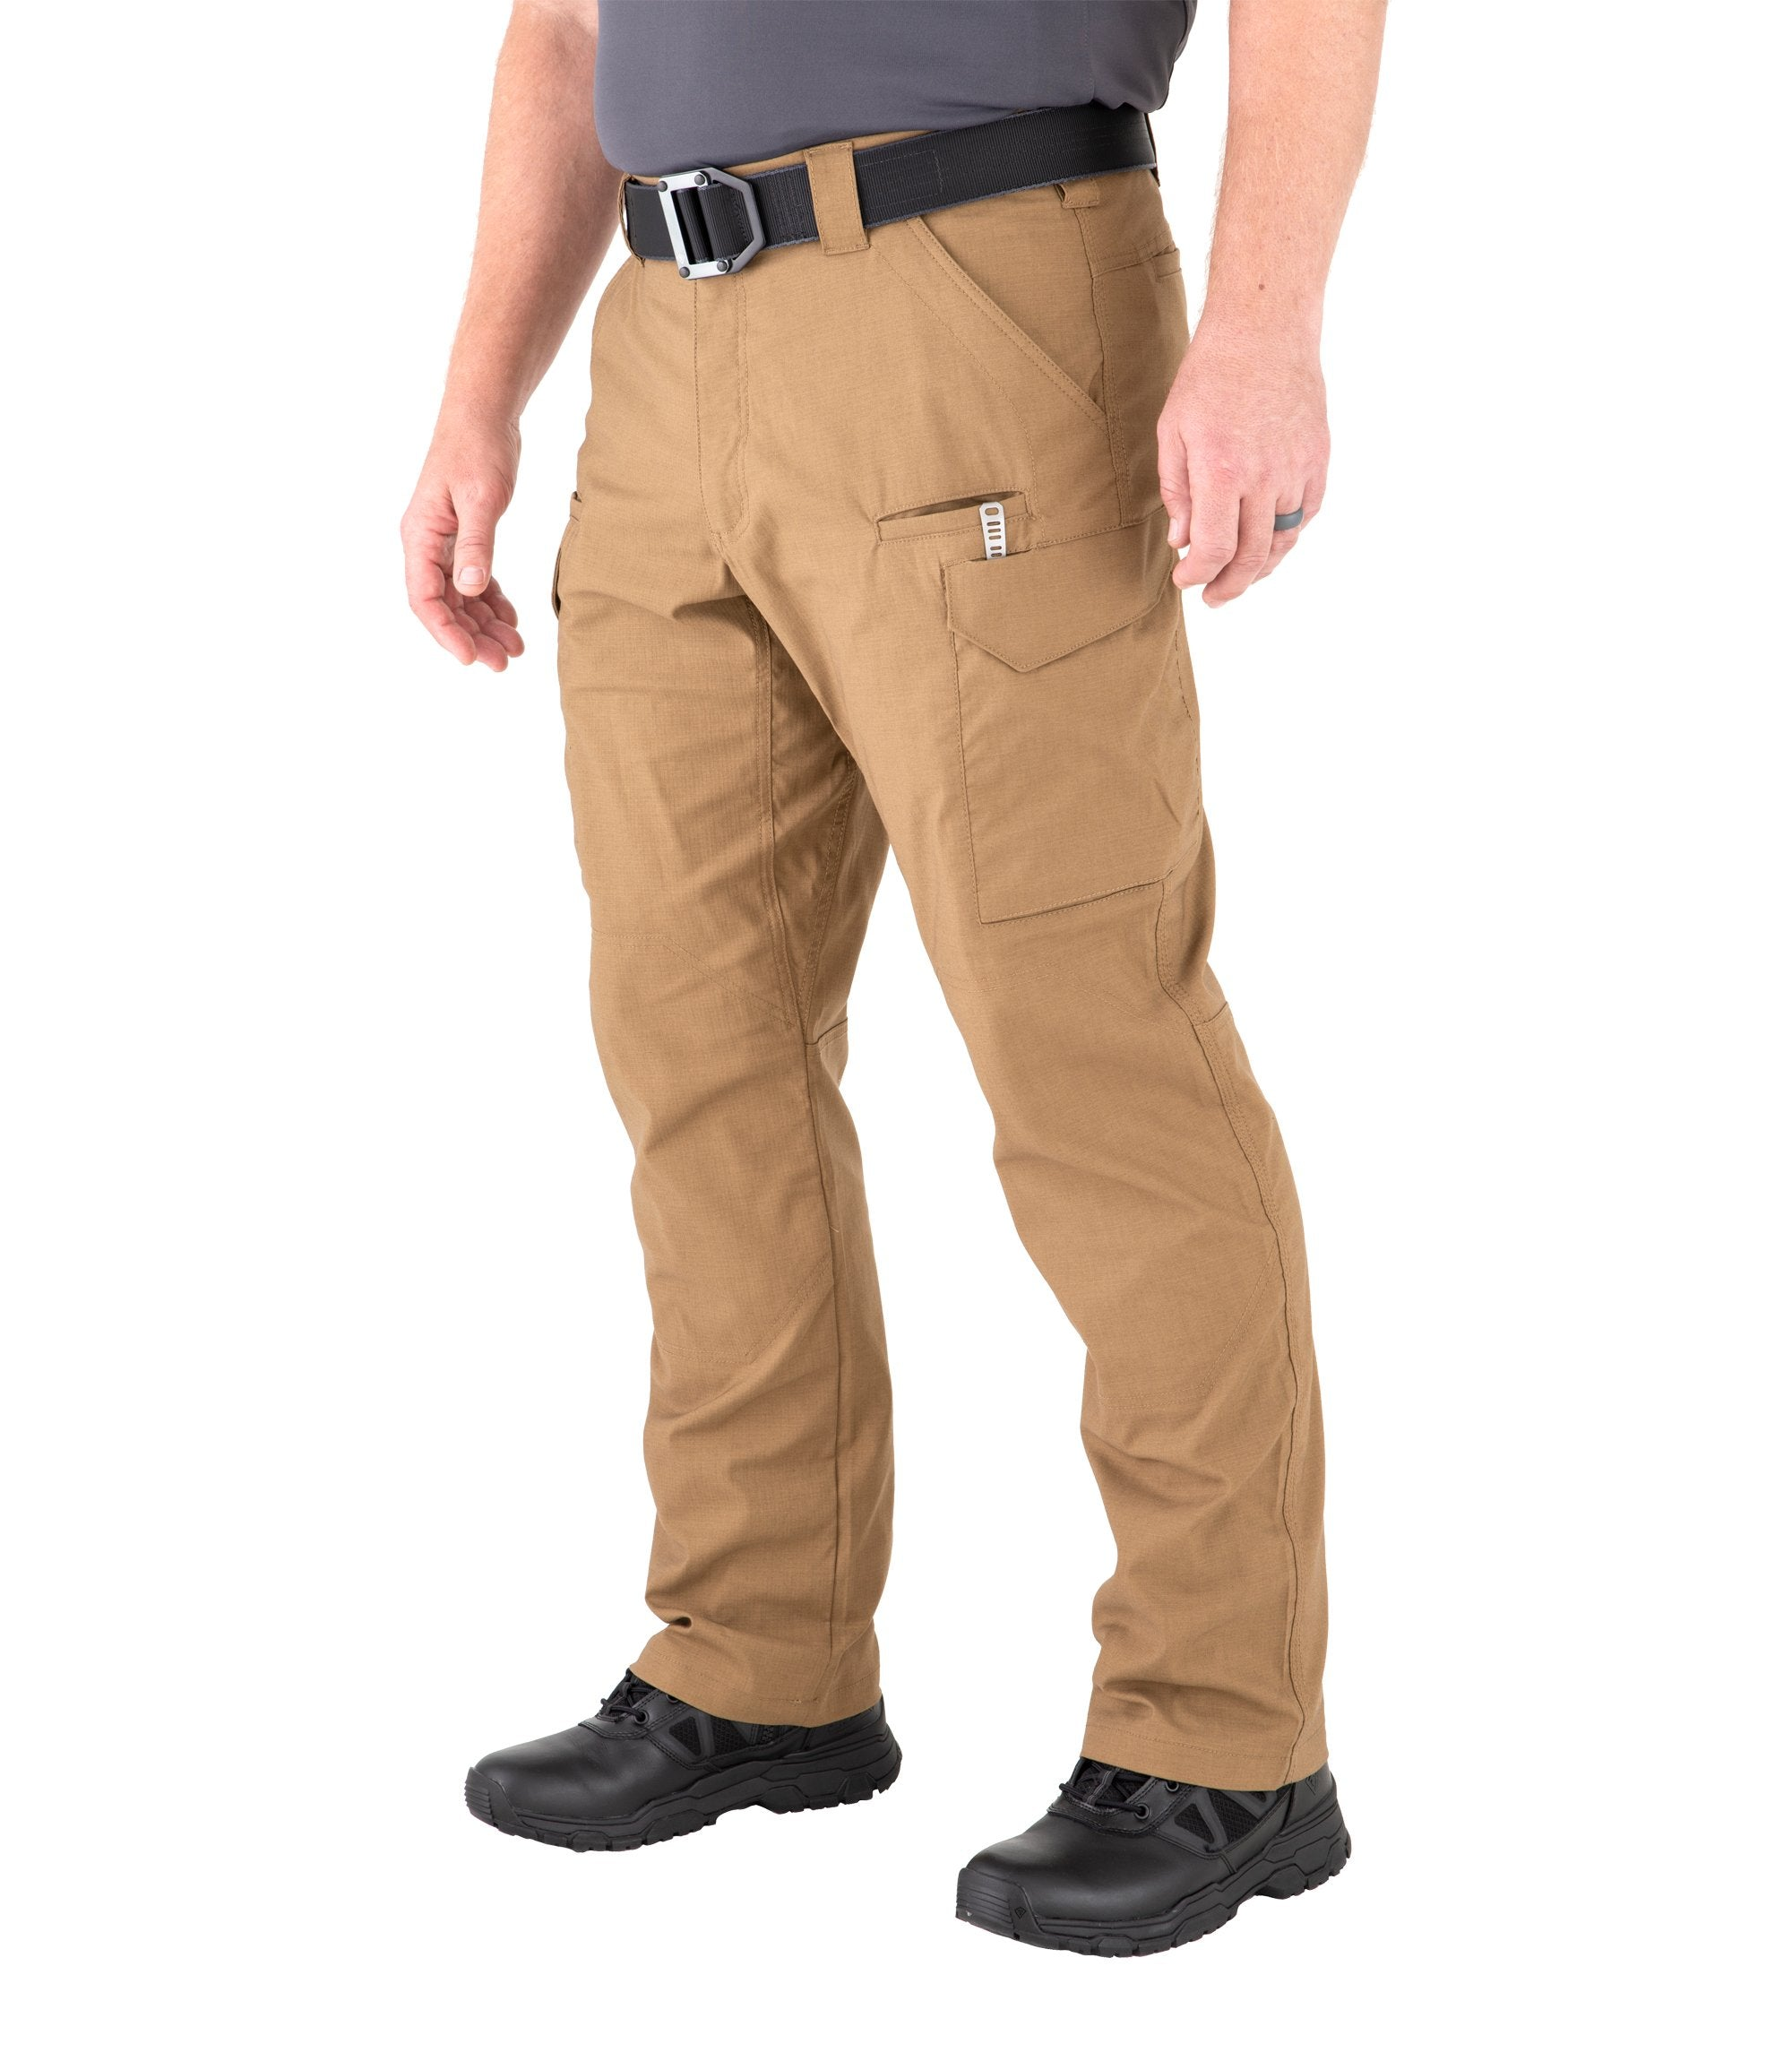 First Tactical V2 Tactical Pants - Mens - Coyote Brown & Kodiak Brown - red-diamond-uniform-police-supply